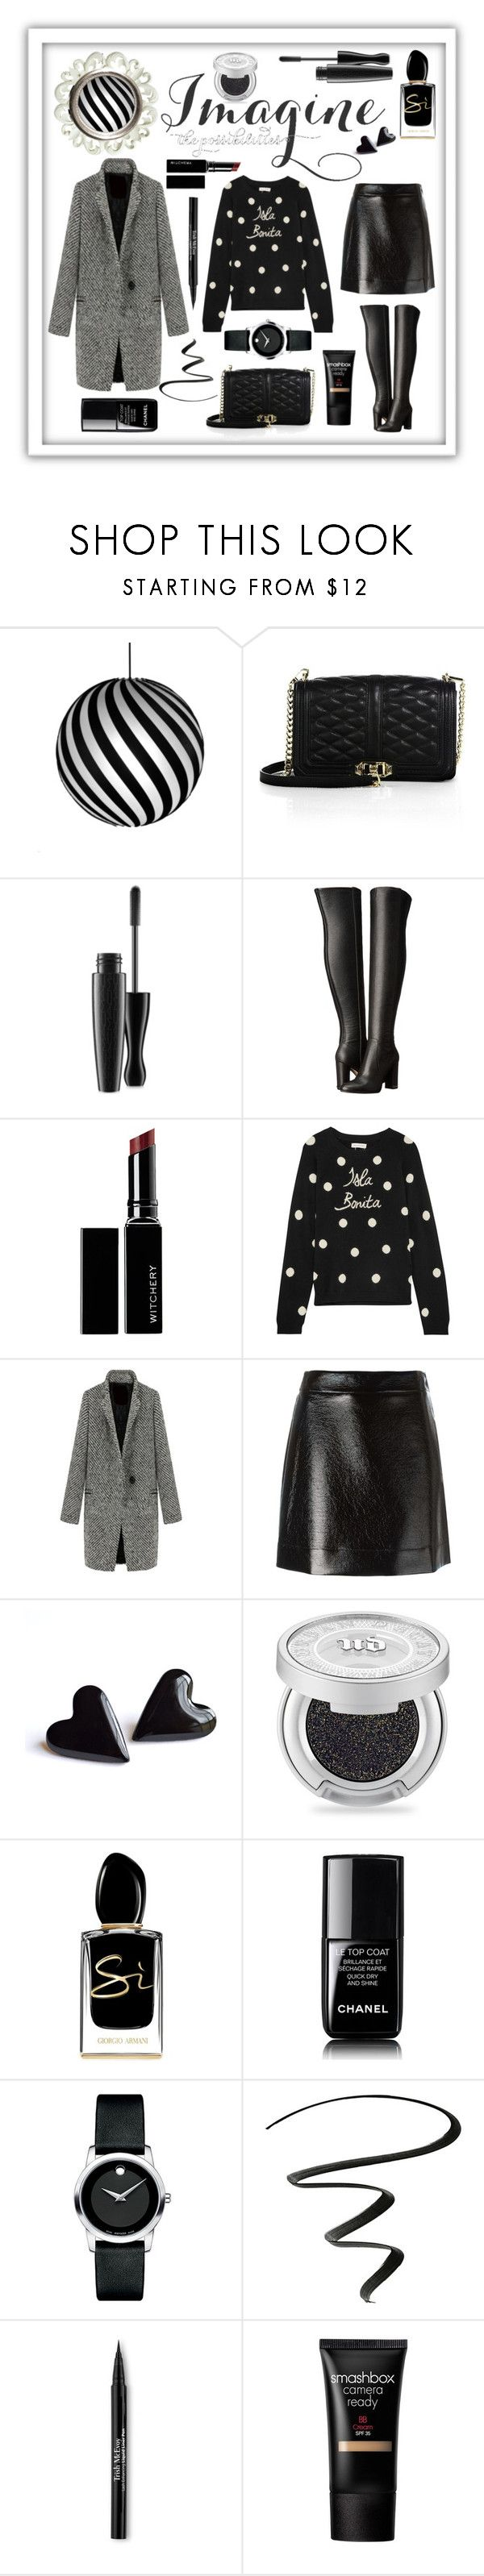 """Imagine The Possibilities #wintersweater"" by shaheenk ❤ liked on Polyvore featuring David Trubridge, Rebecca Minkoff, MAC Cosmetics, MICHAEL Michael Kors, Witchery, Chinti and Parker, Urban Decay, Giorgio Armani, Chanel and Movado"